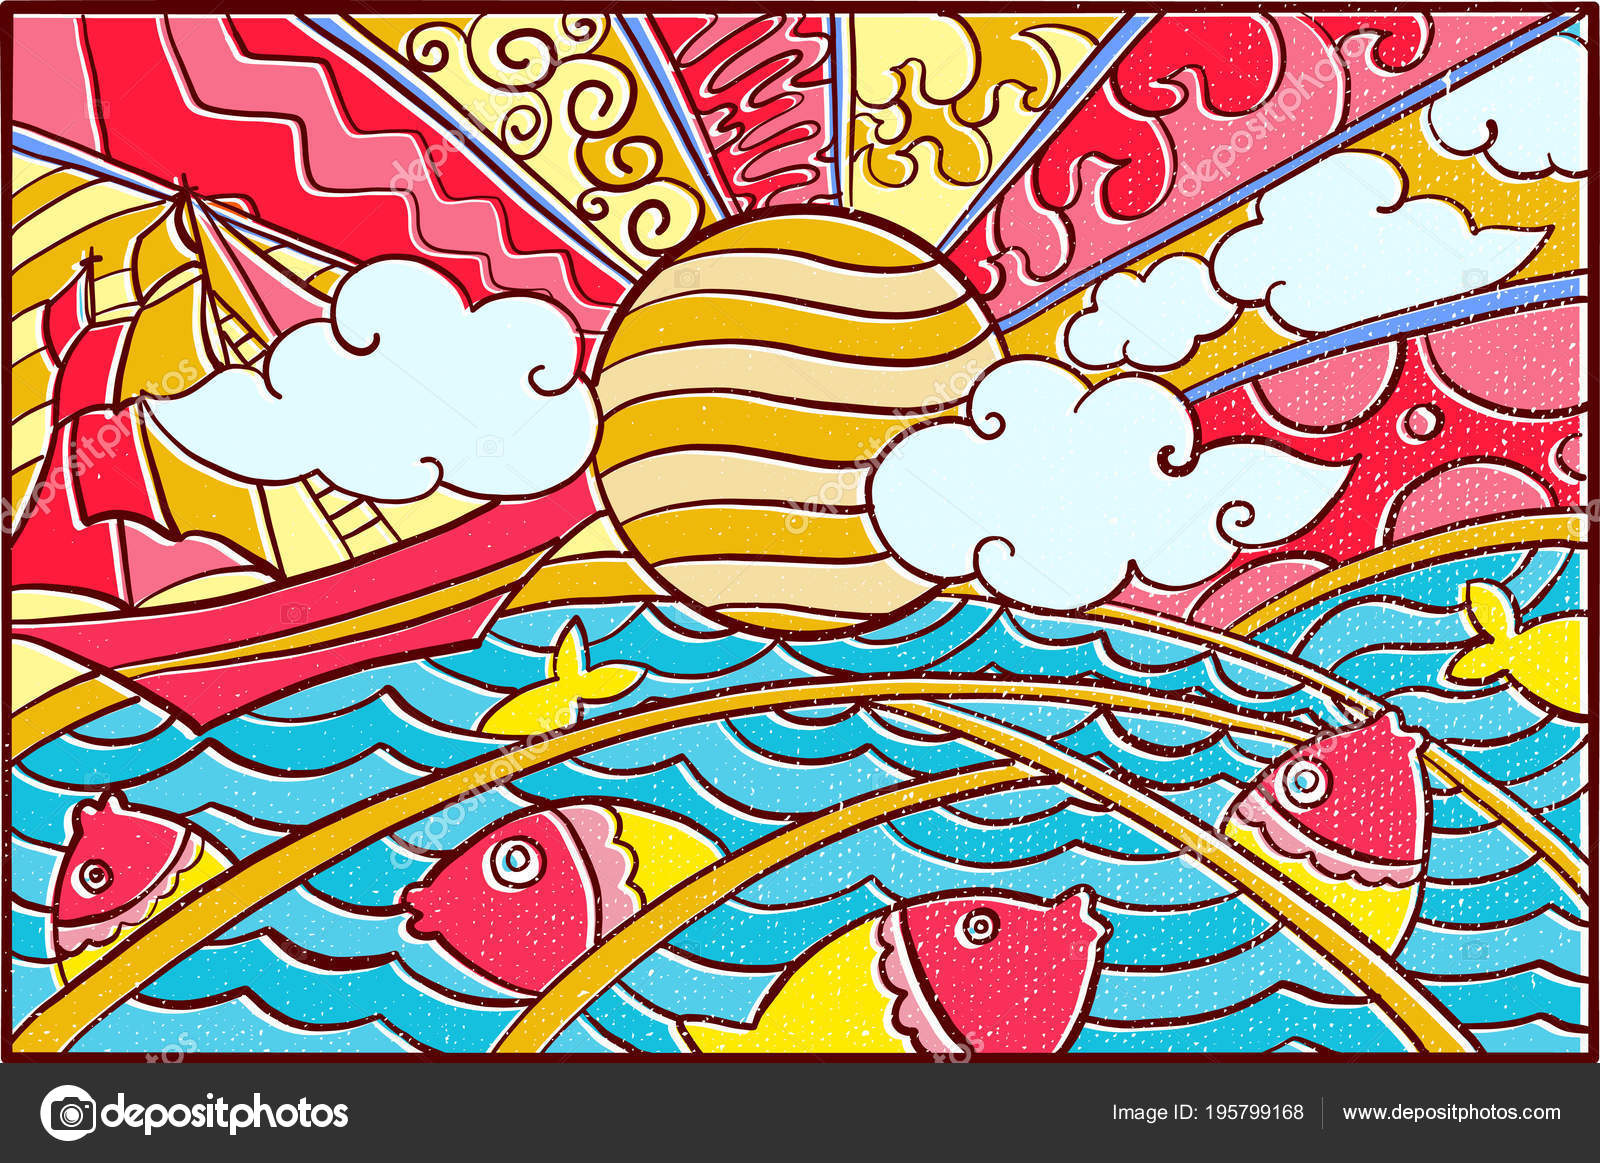 Sun Mosaic Art Hand Drawn Pop Art Wallpaper Mosaic